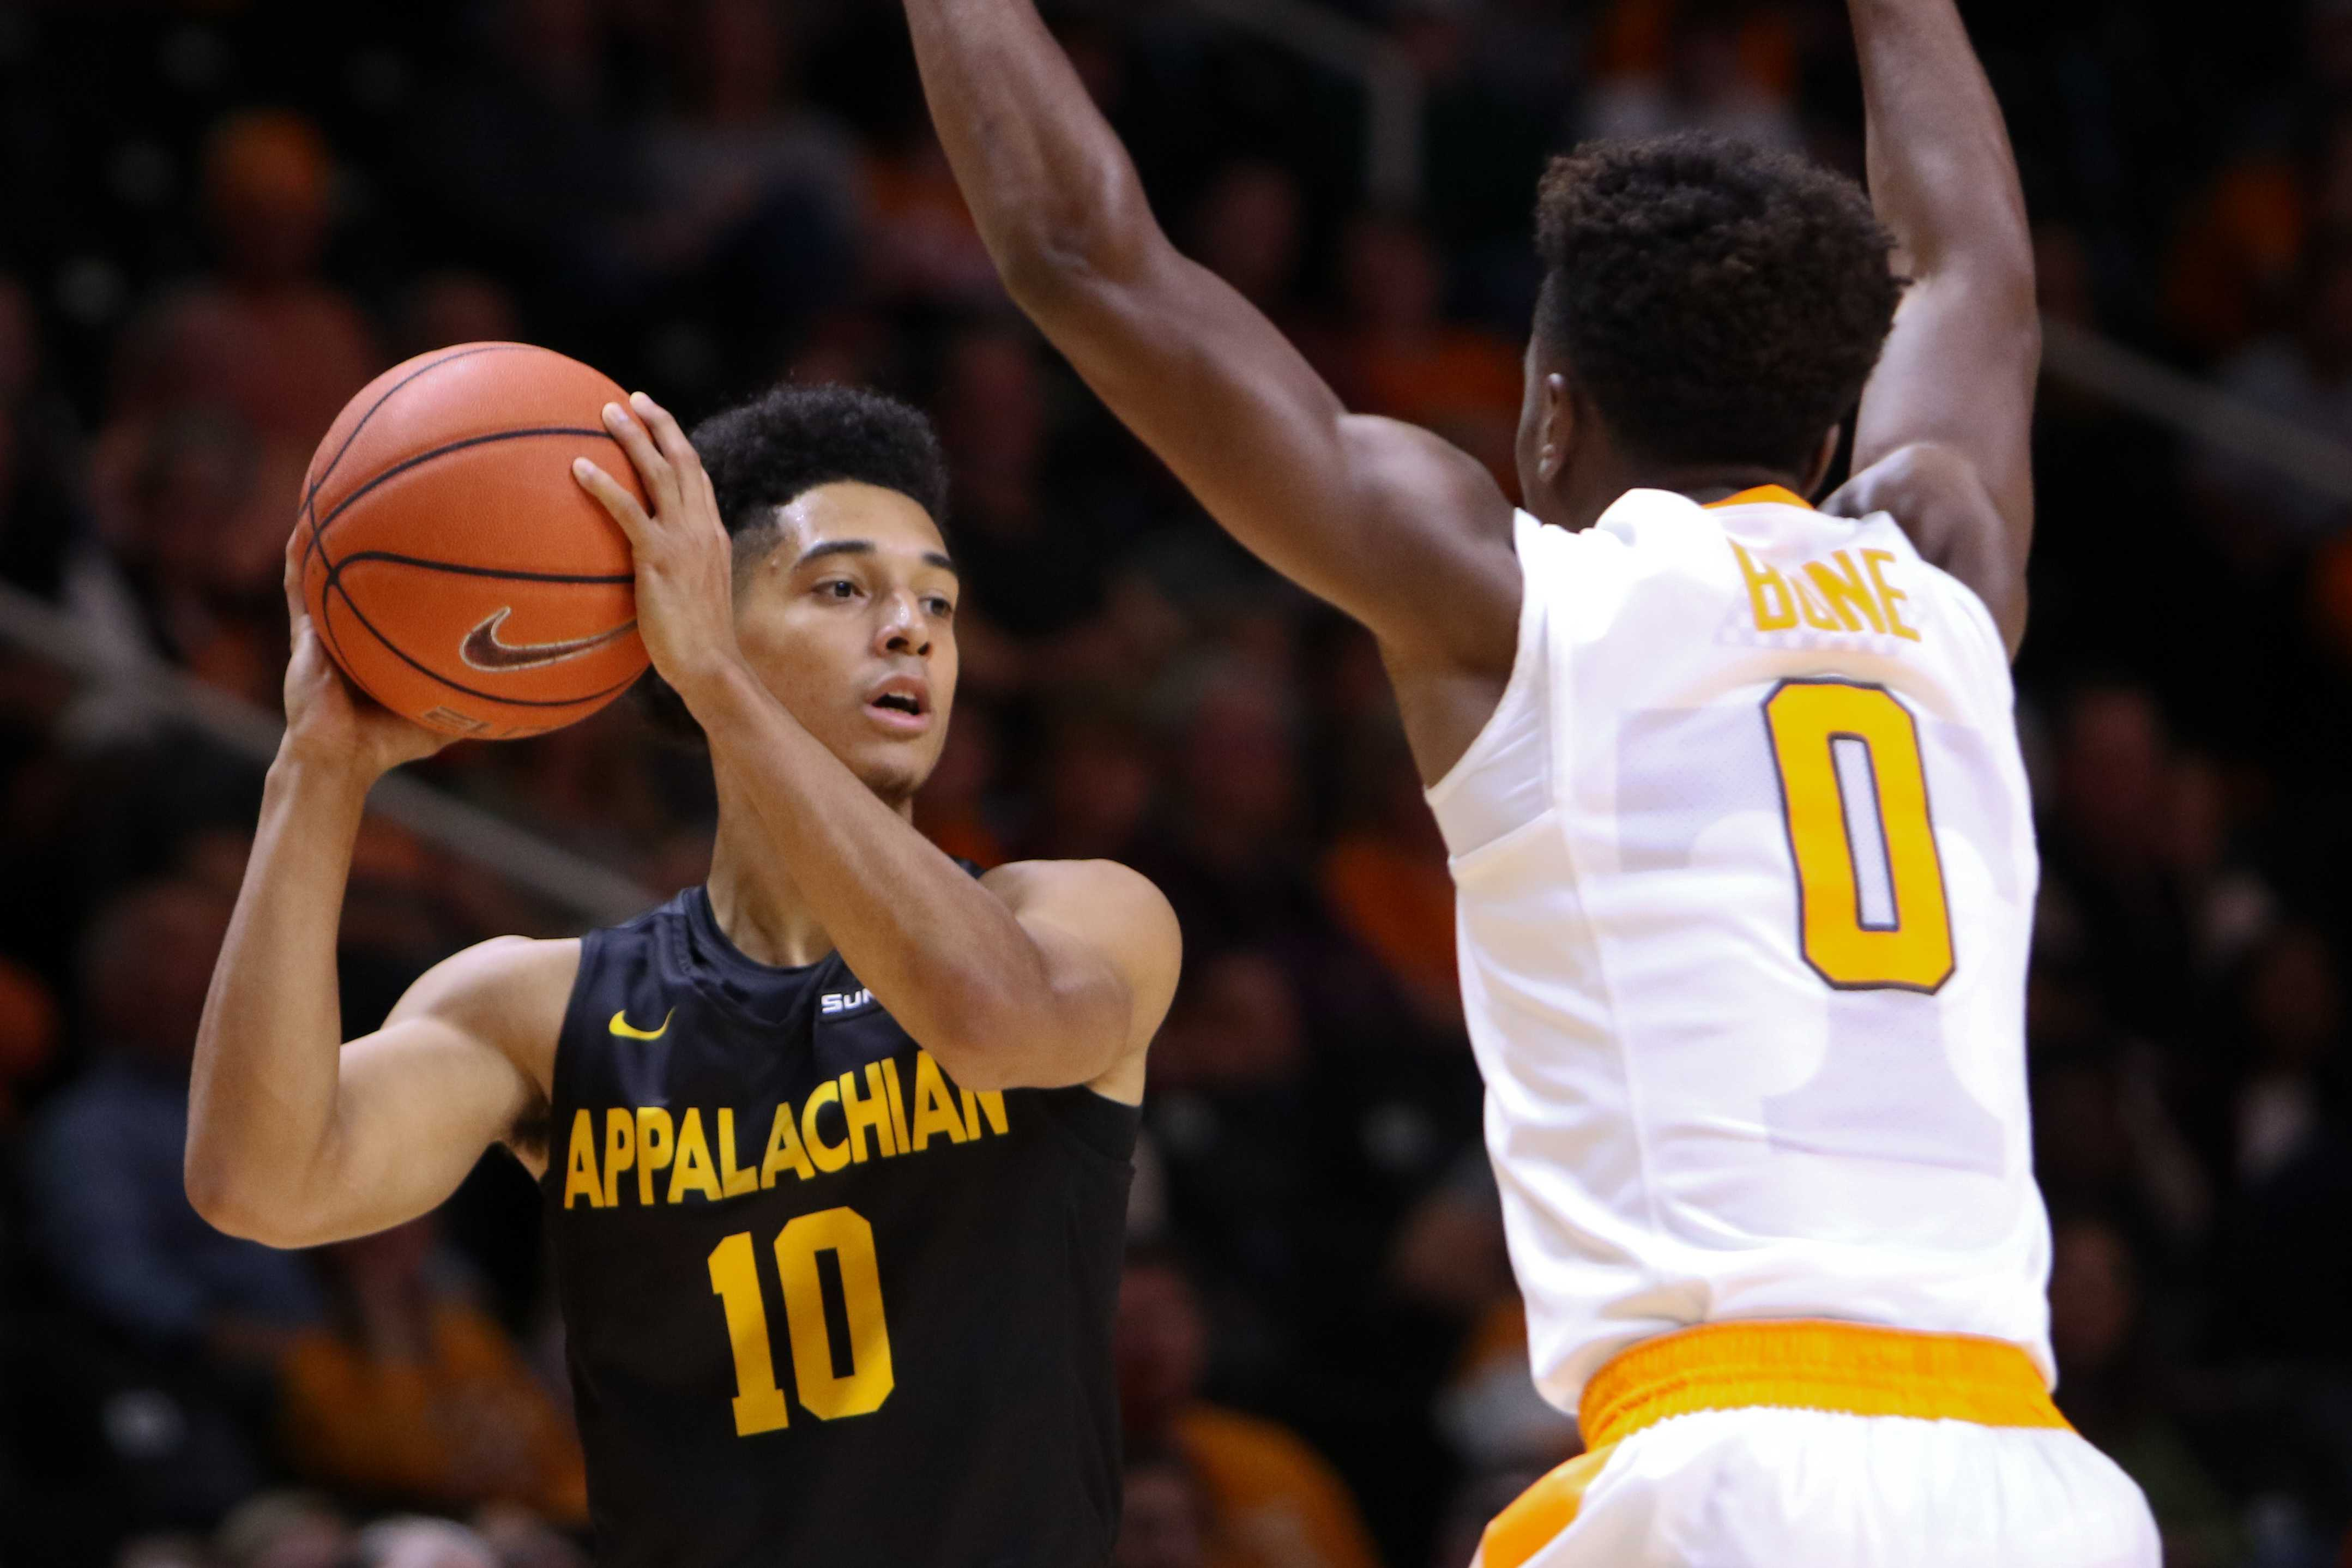 Freshman Patrick Good tied for a game high 21-points in the Mountaineers loss to Tennessee Photo courtesy: Randy Sartin/App State Athletics